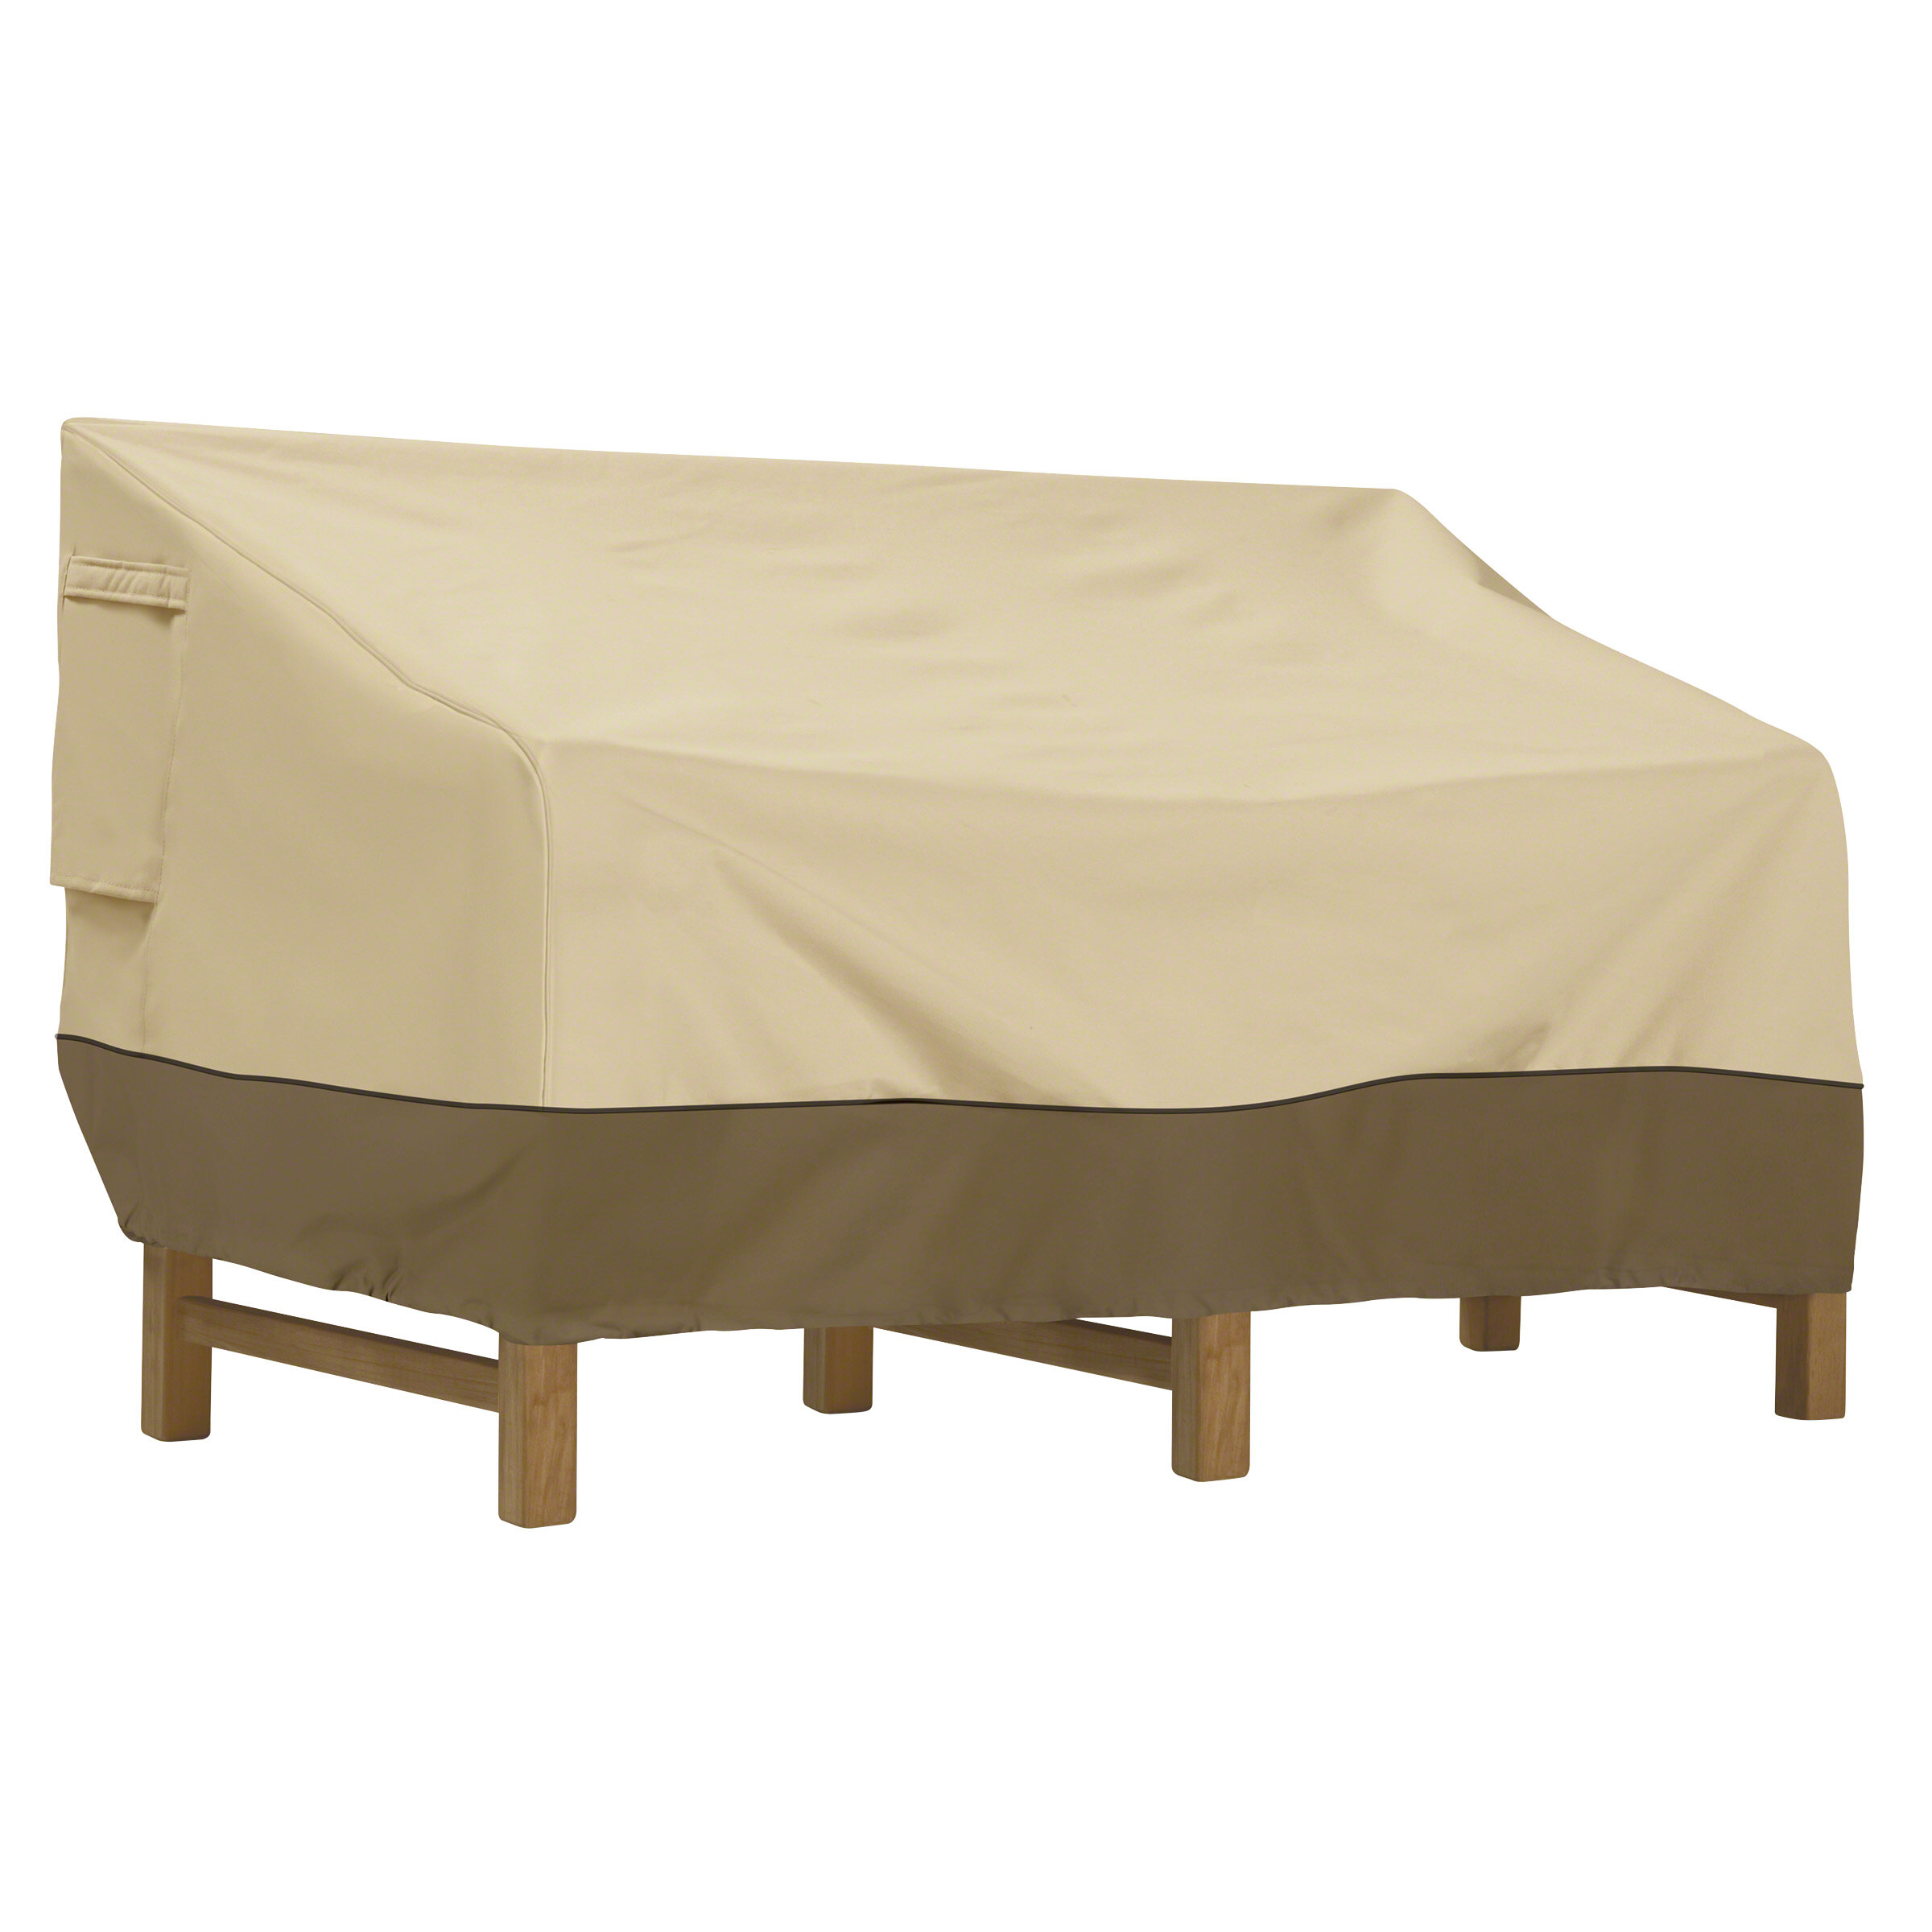 Freeport Park Donahue Water Resistant Patio Sofa Cover With 3 Year Warranty Reviews Wayfair